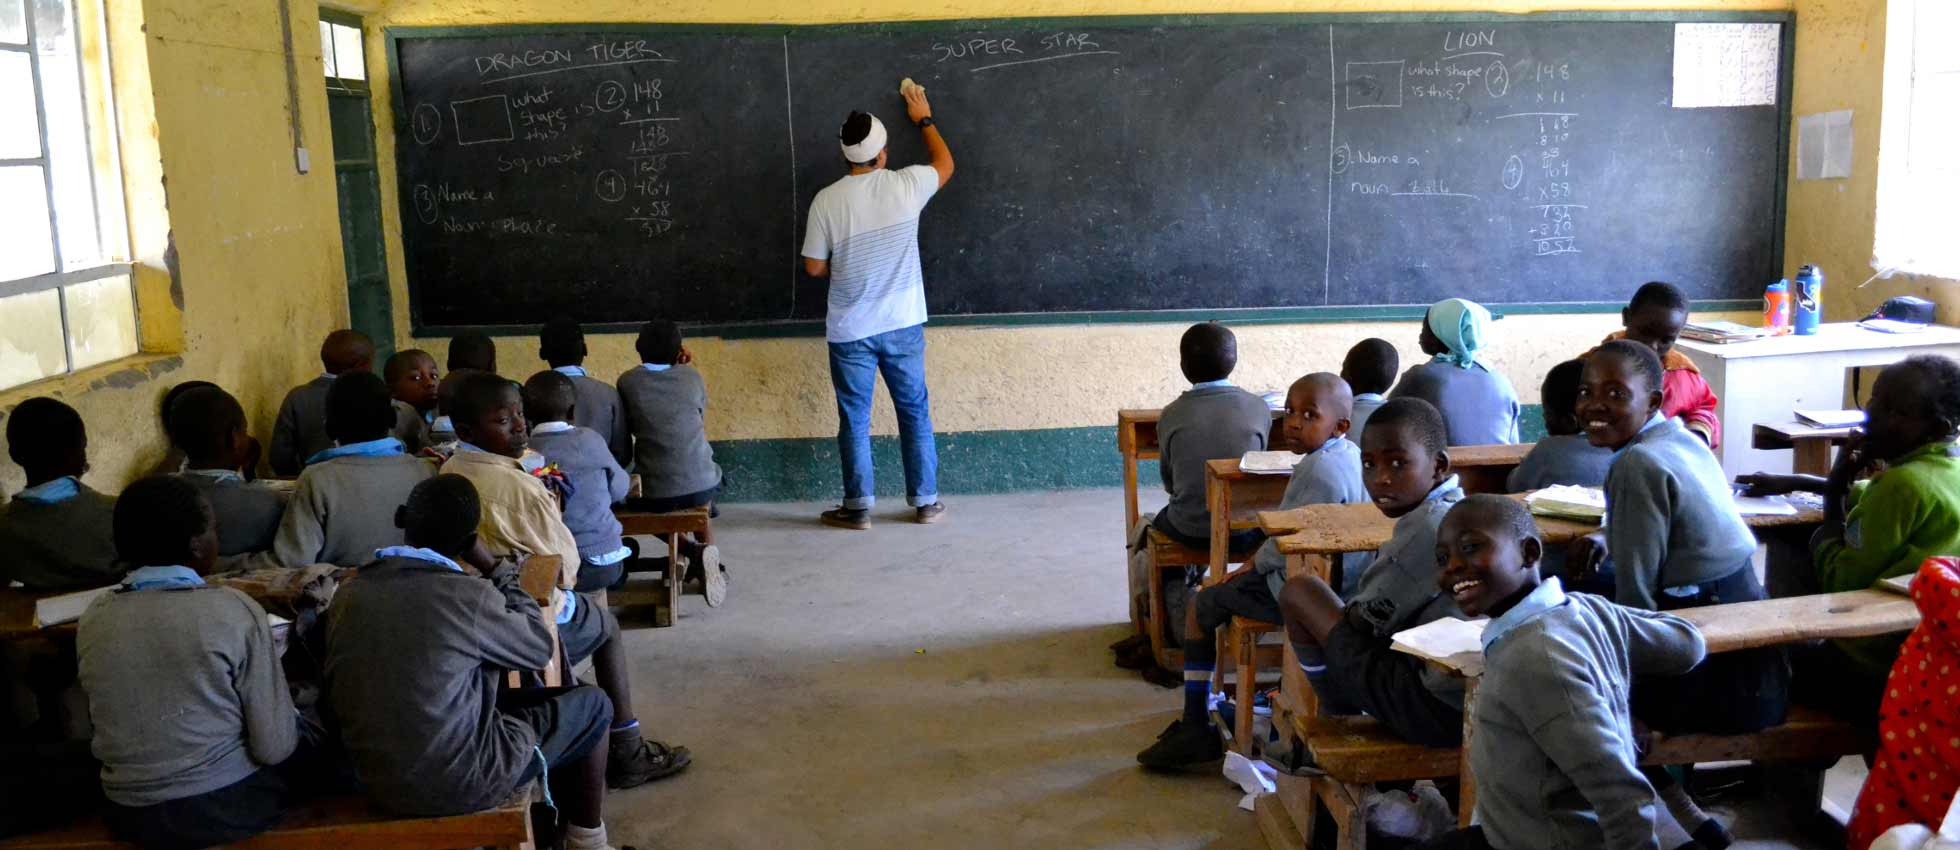 ARCC Gap Year - Teaching in Africa